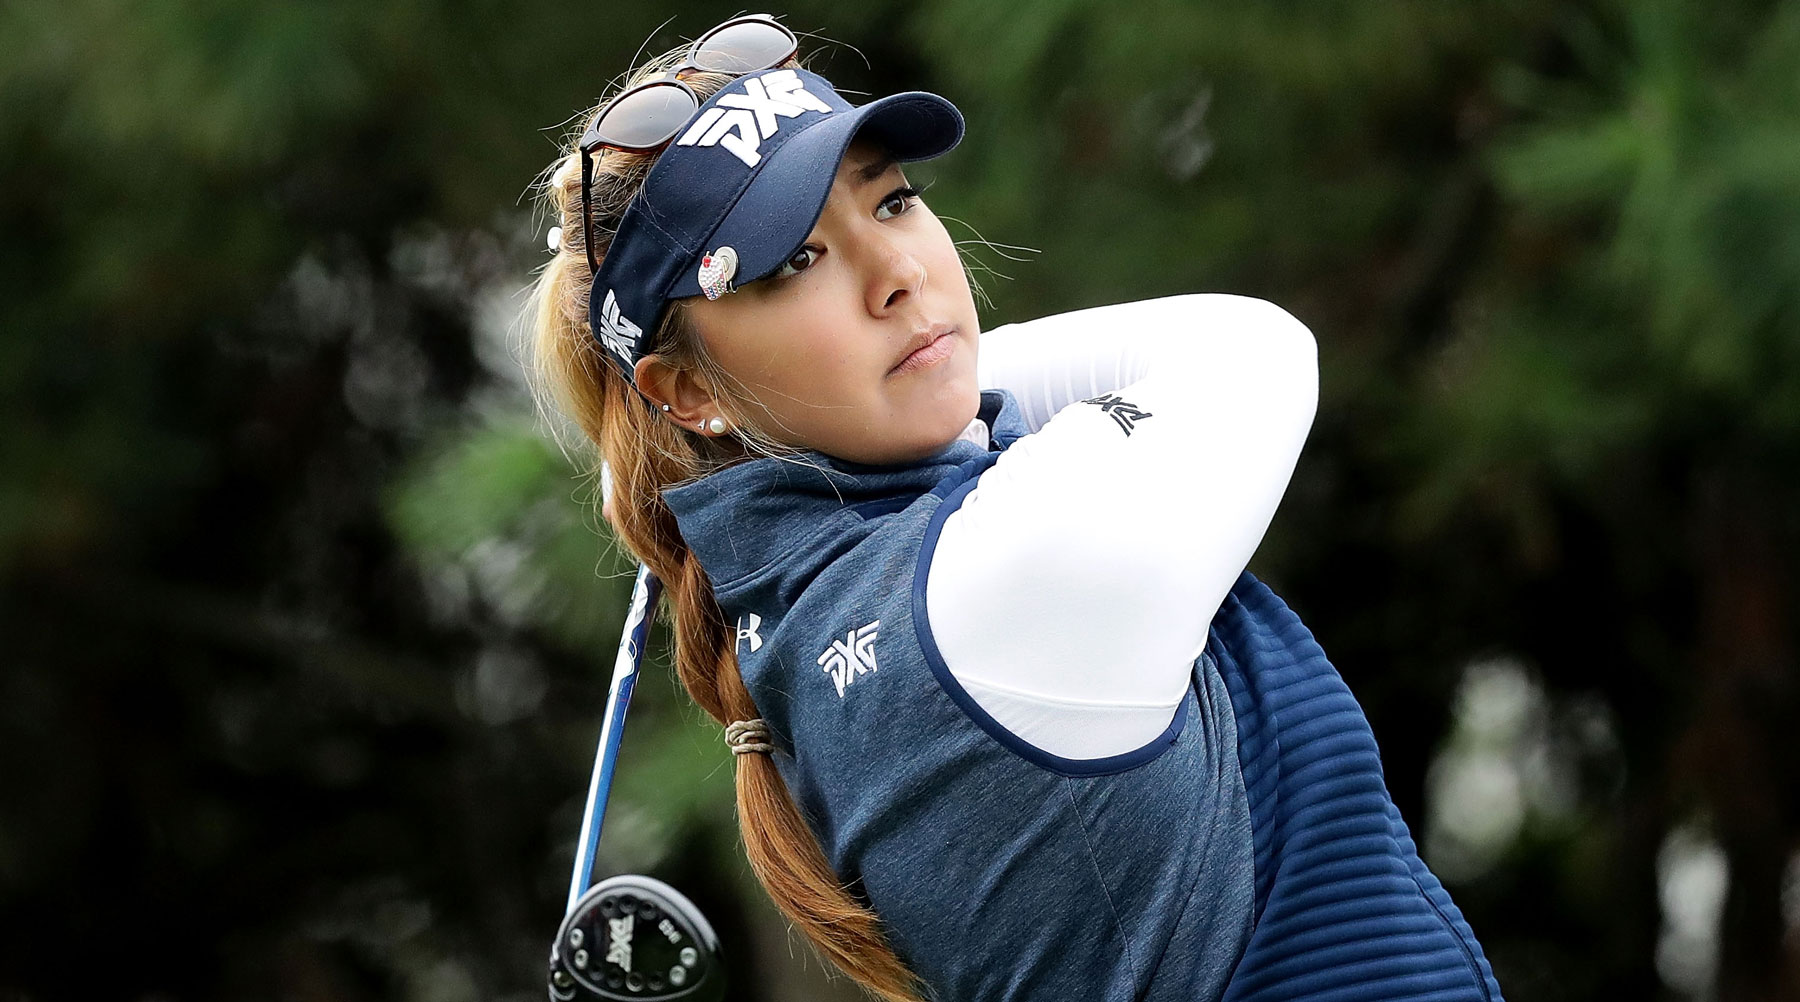 Alison Lee turned professional in 2014 after a season and a half at UCLA.